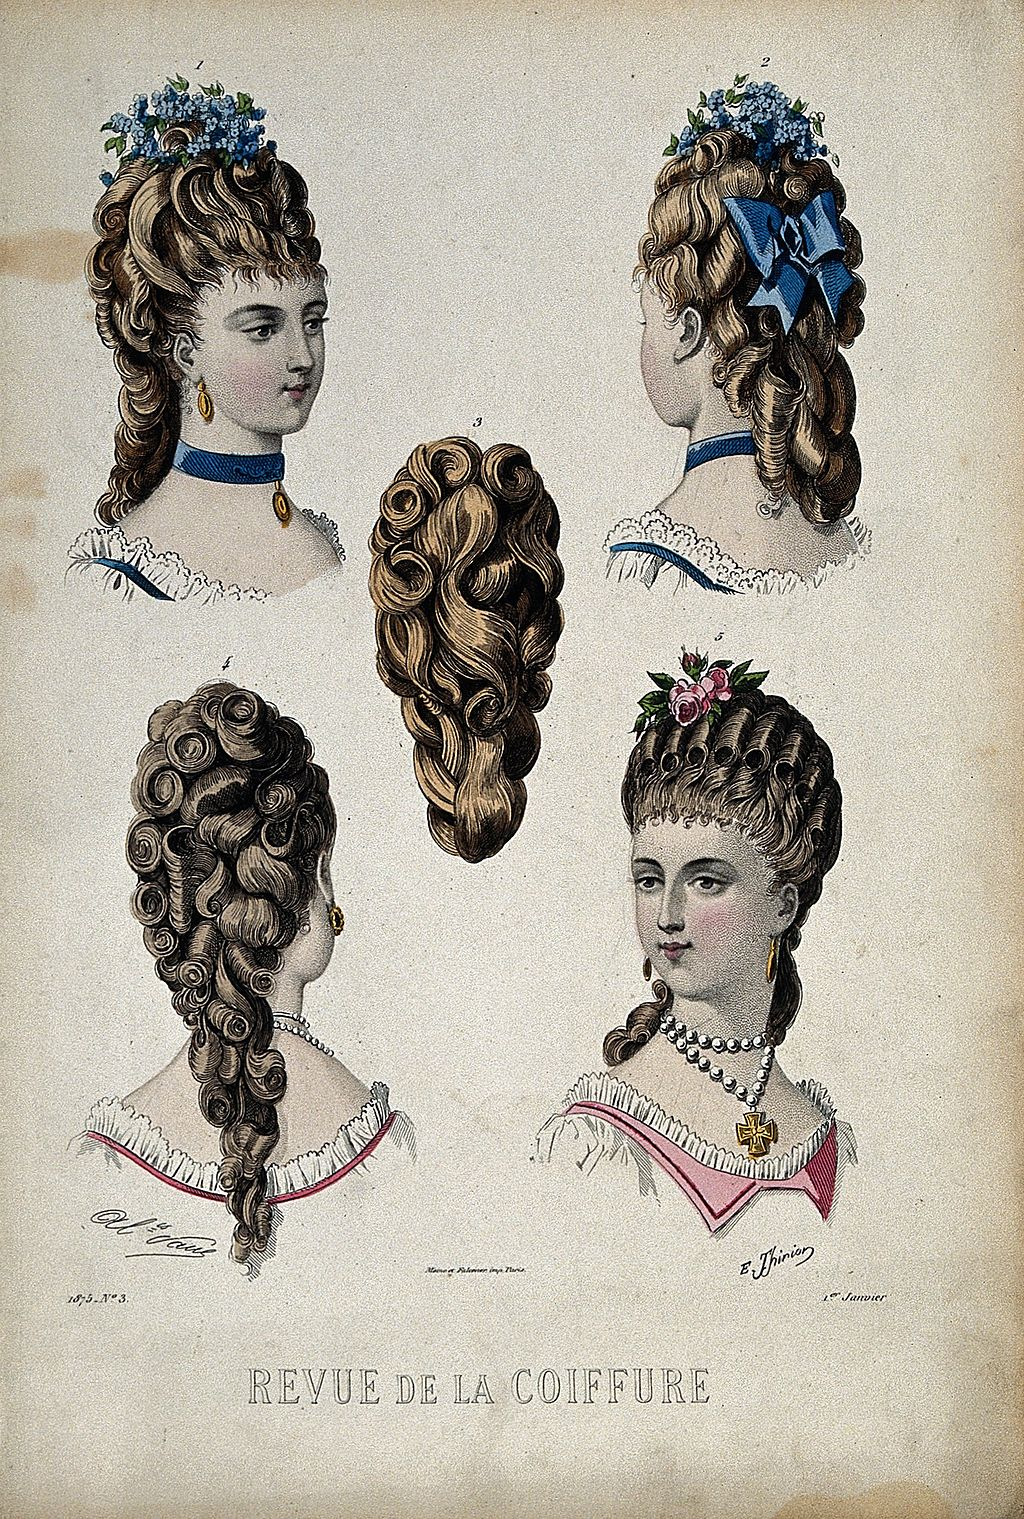 hair Author's Blog Highlighting Historical